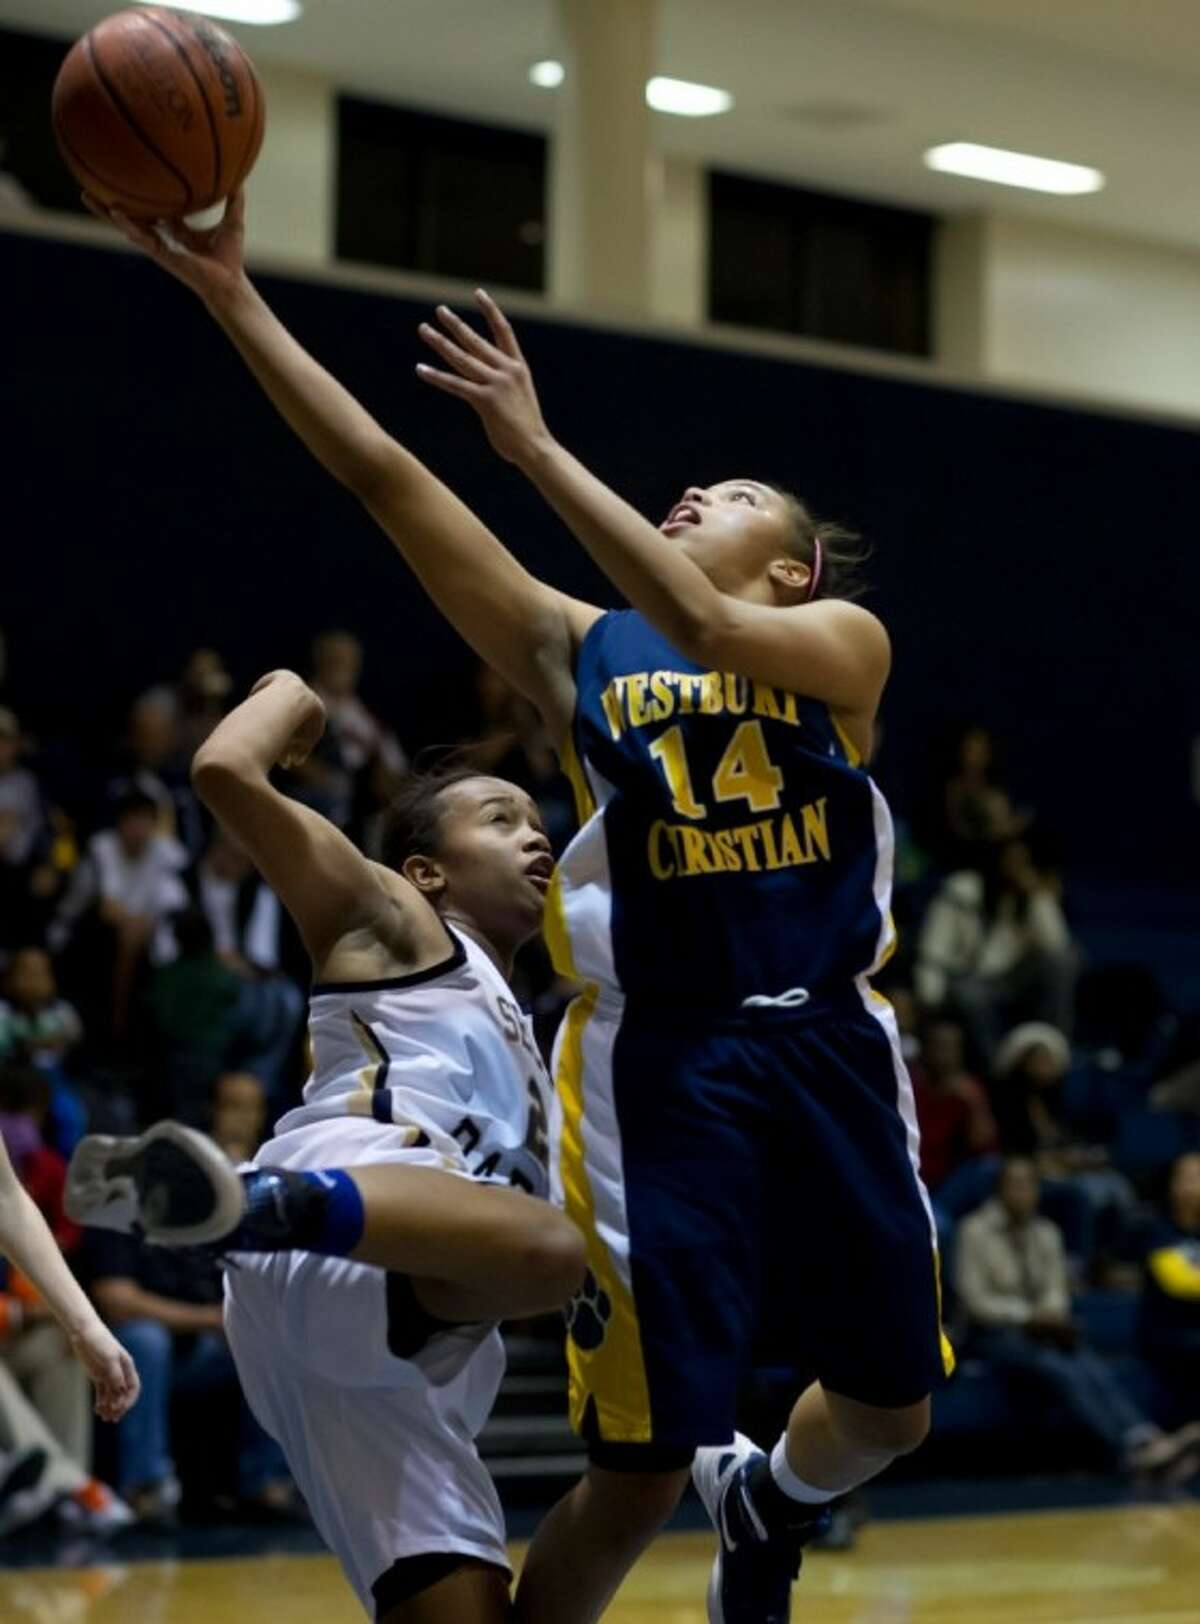 Tiffany Davis (14) led Westbury Christian with 26 points as the Lady Wildcats extended their district winning streak.